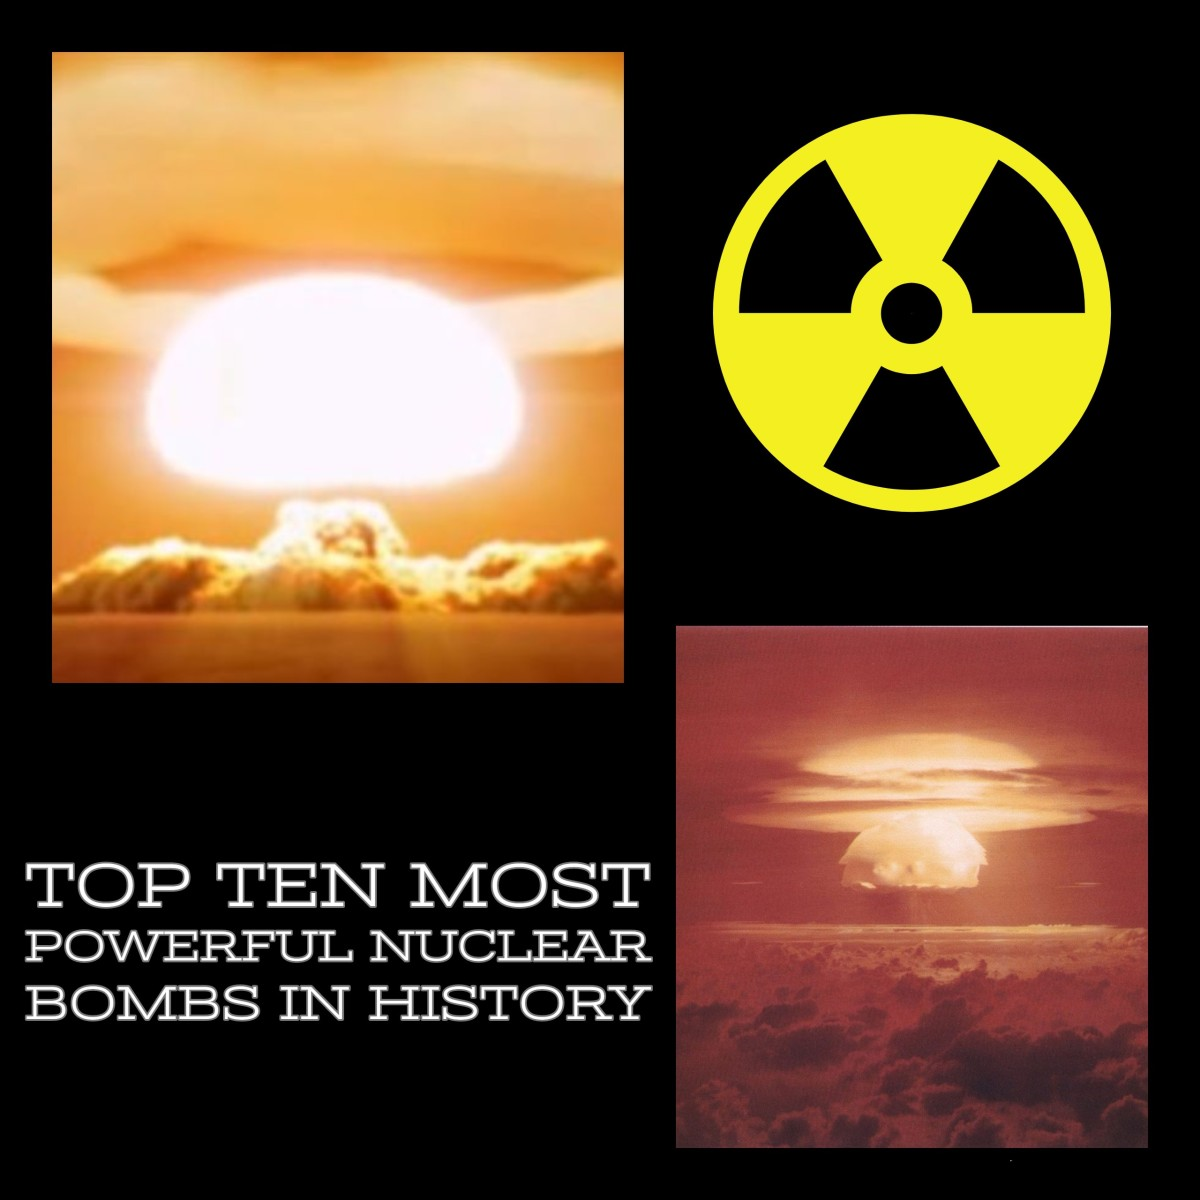 Ten most powerful nuclear bombs in history.